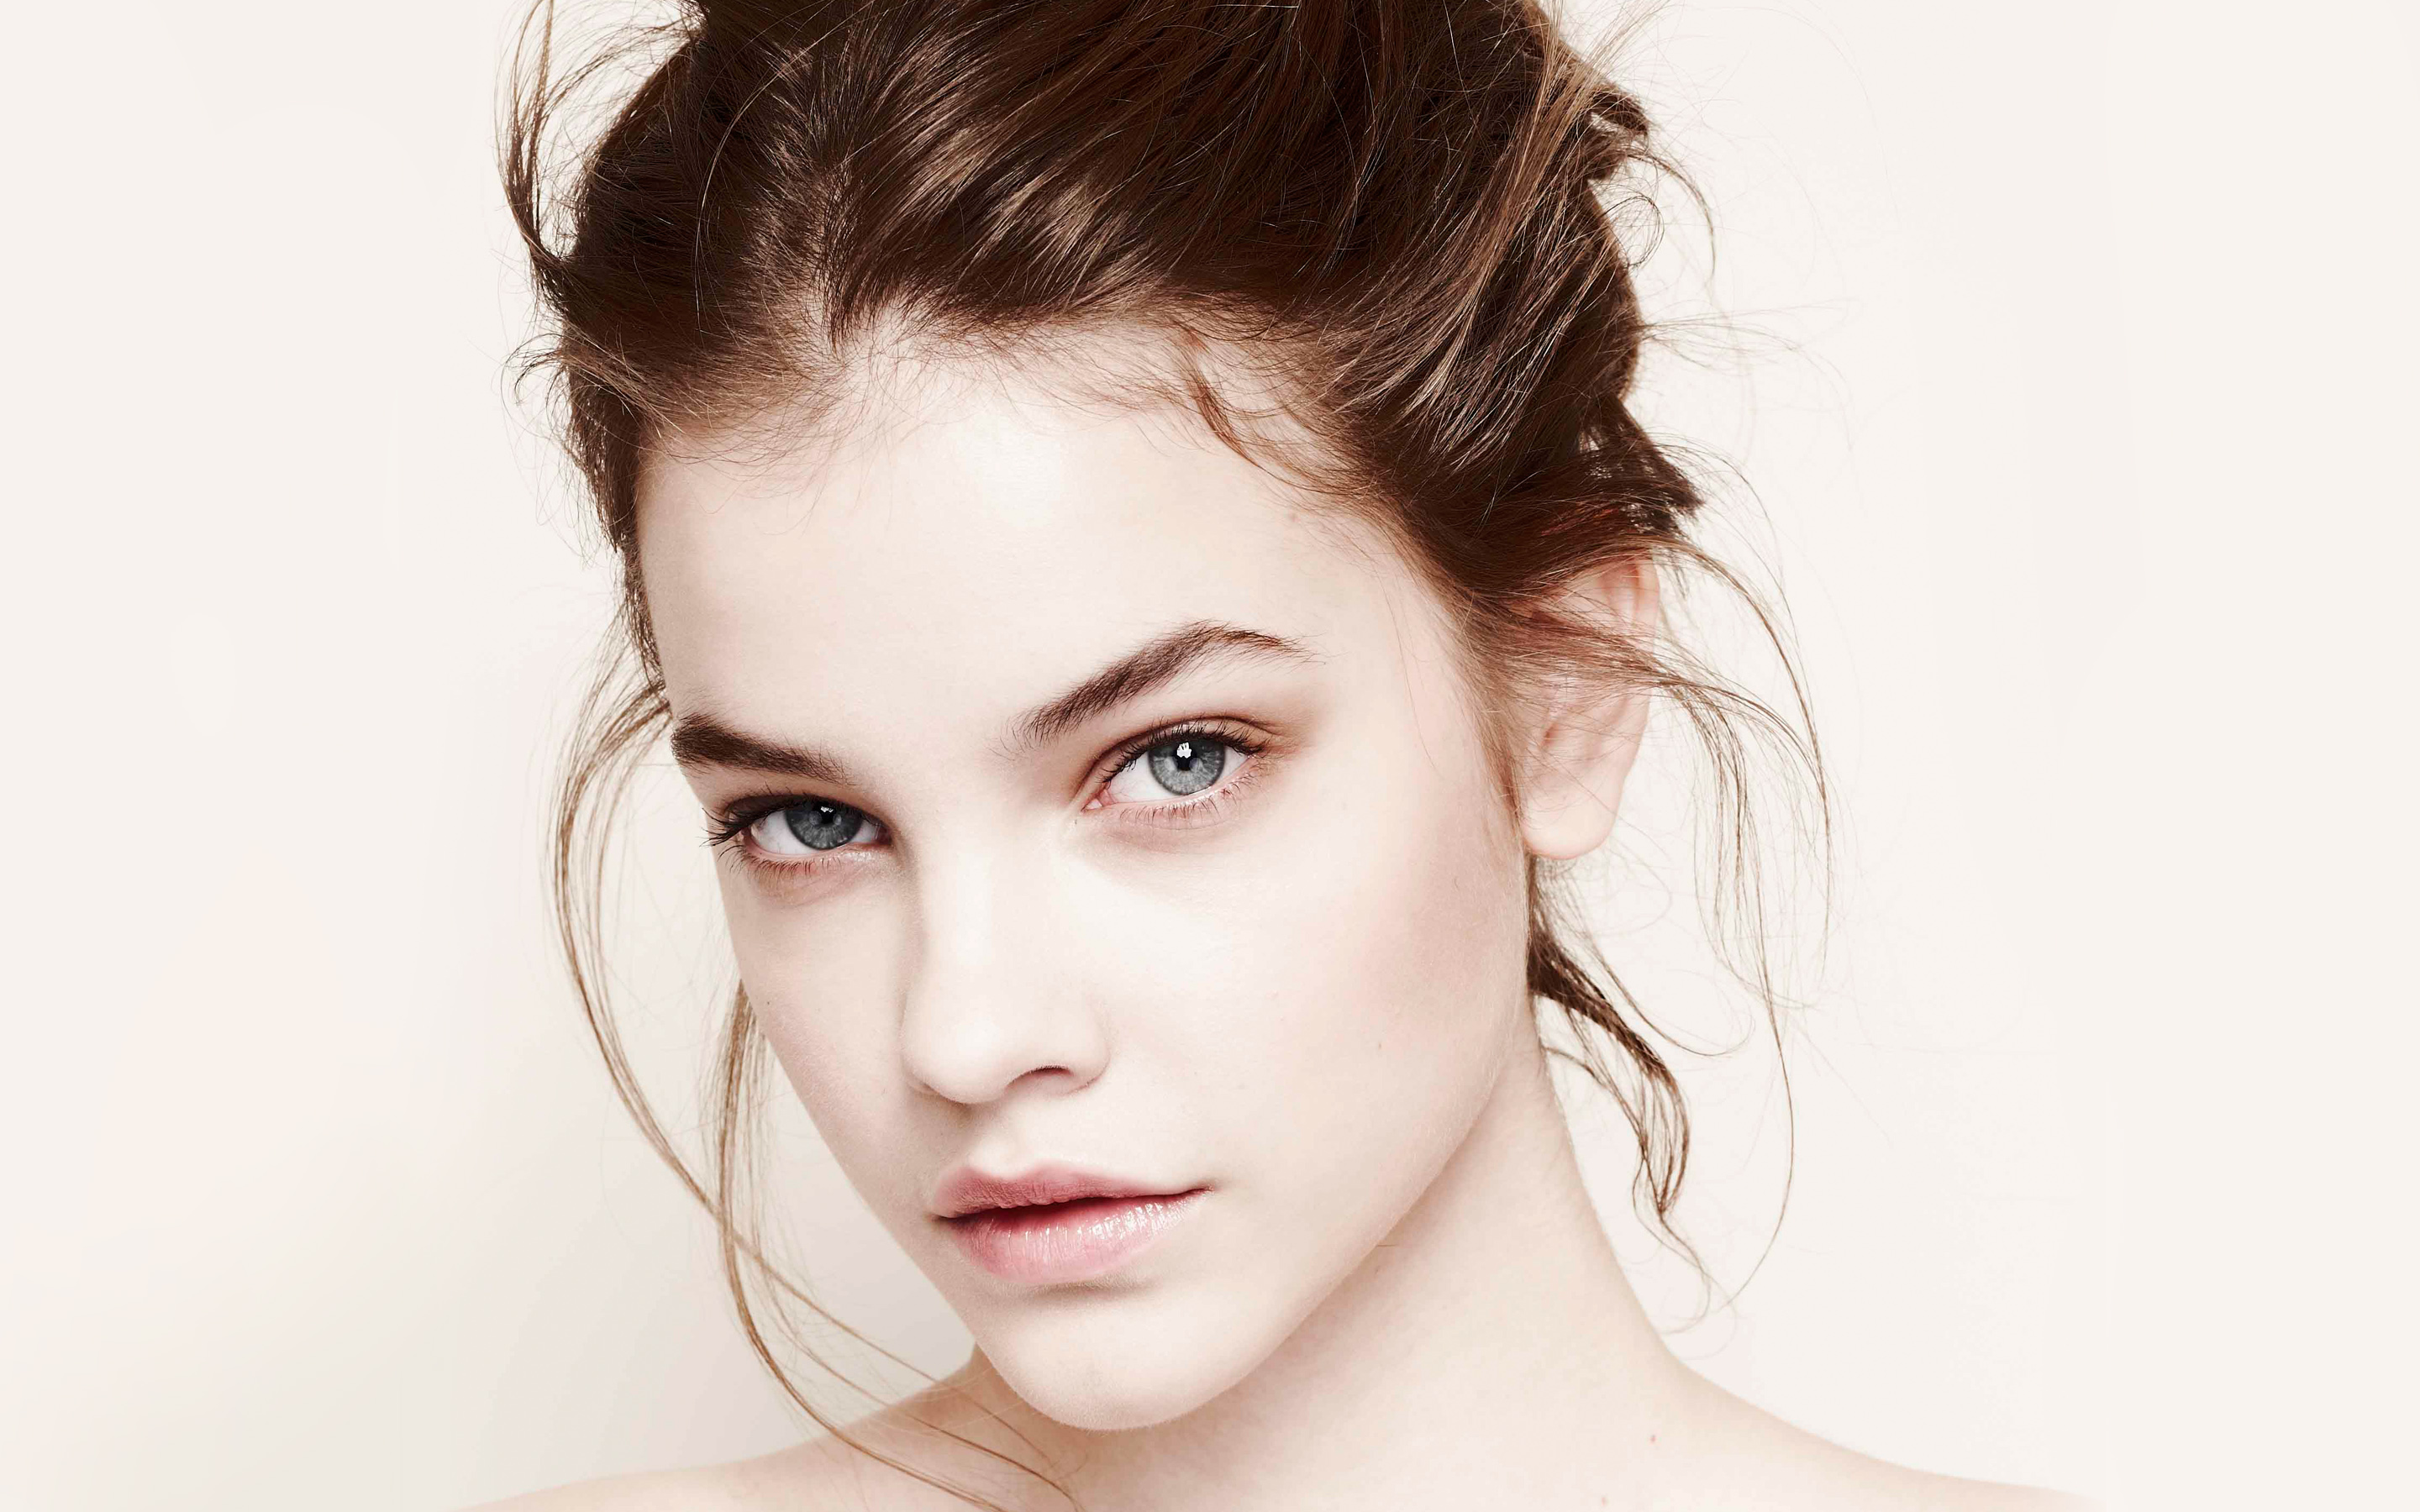 Barbara Palvin 8 Wallpapers | HD Wallpapers Wallpaper